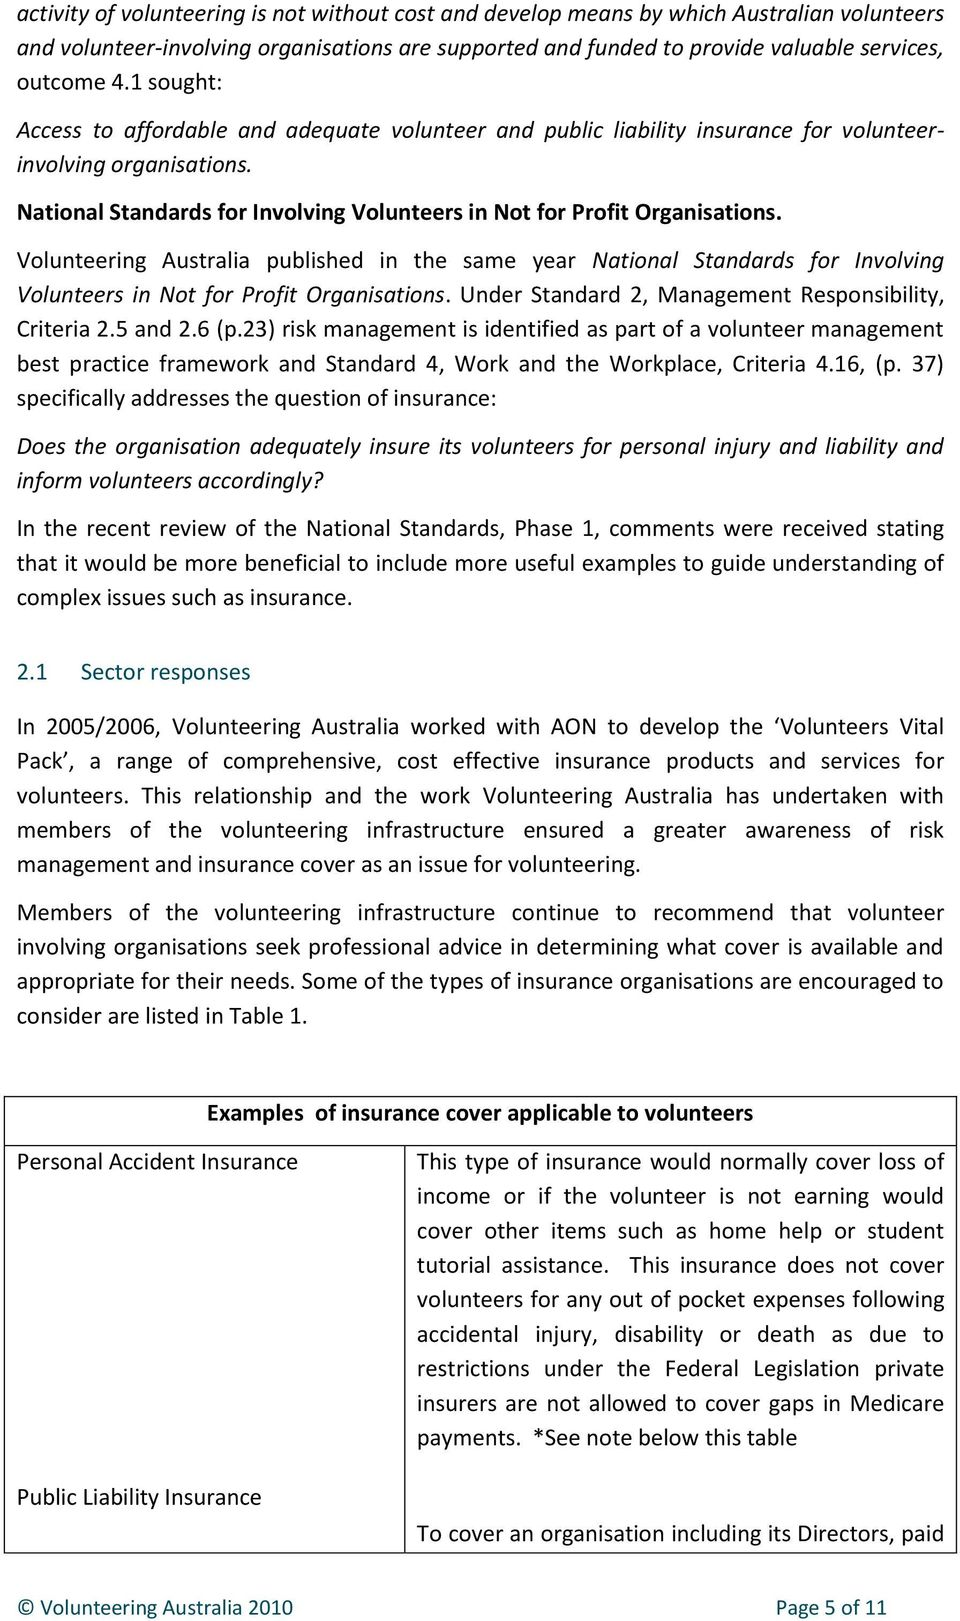 Volunteering Australia published in the same year National Standards for Involving Volunteers in Not for Profit Organisations. Under Standard 2, Management Responsibility, Criteria 2.5 and 2.6 (p.